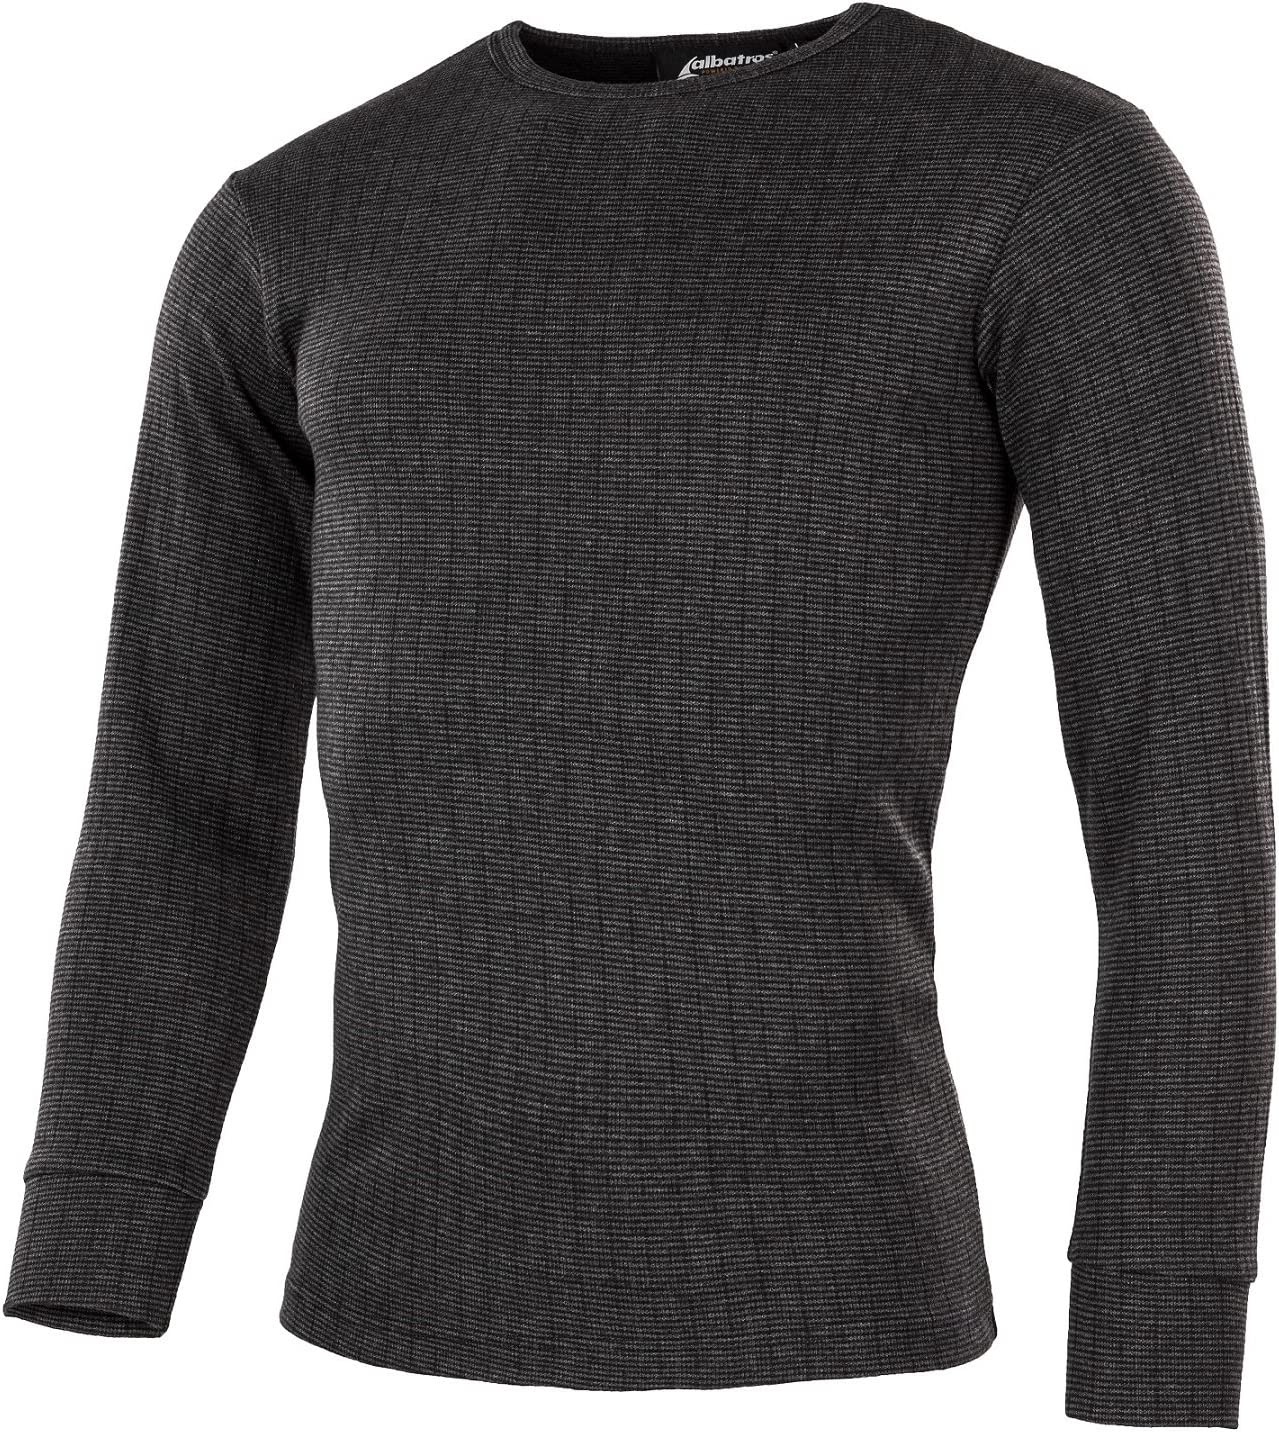 Albatros Thermo-Functional Shirt thermogetic La with long arms-Anthracite